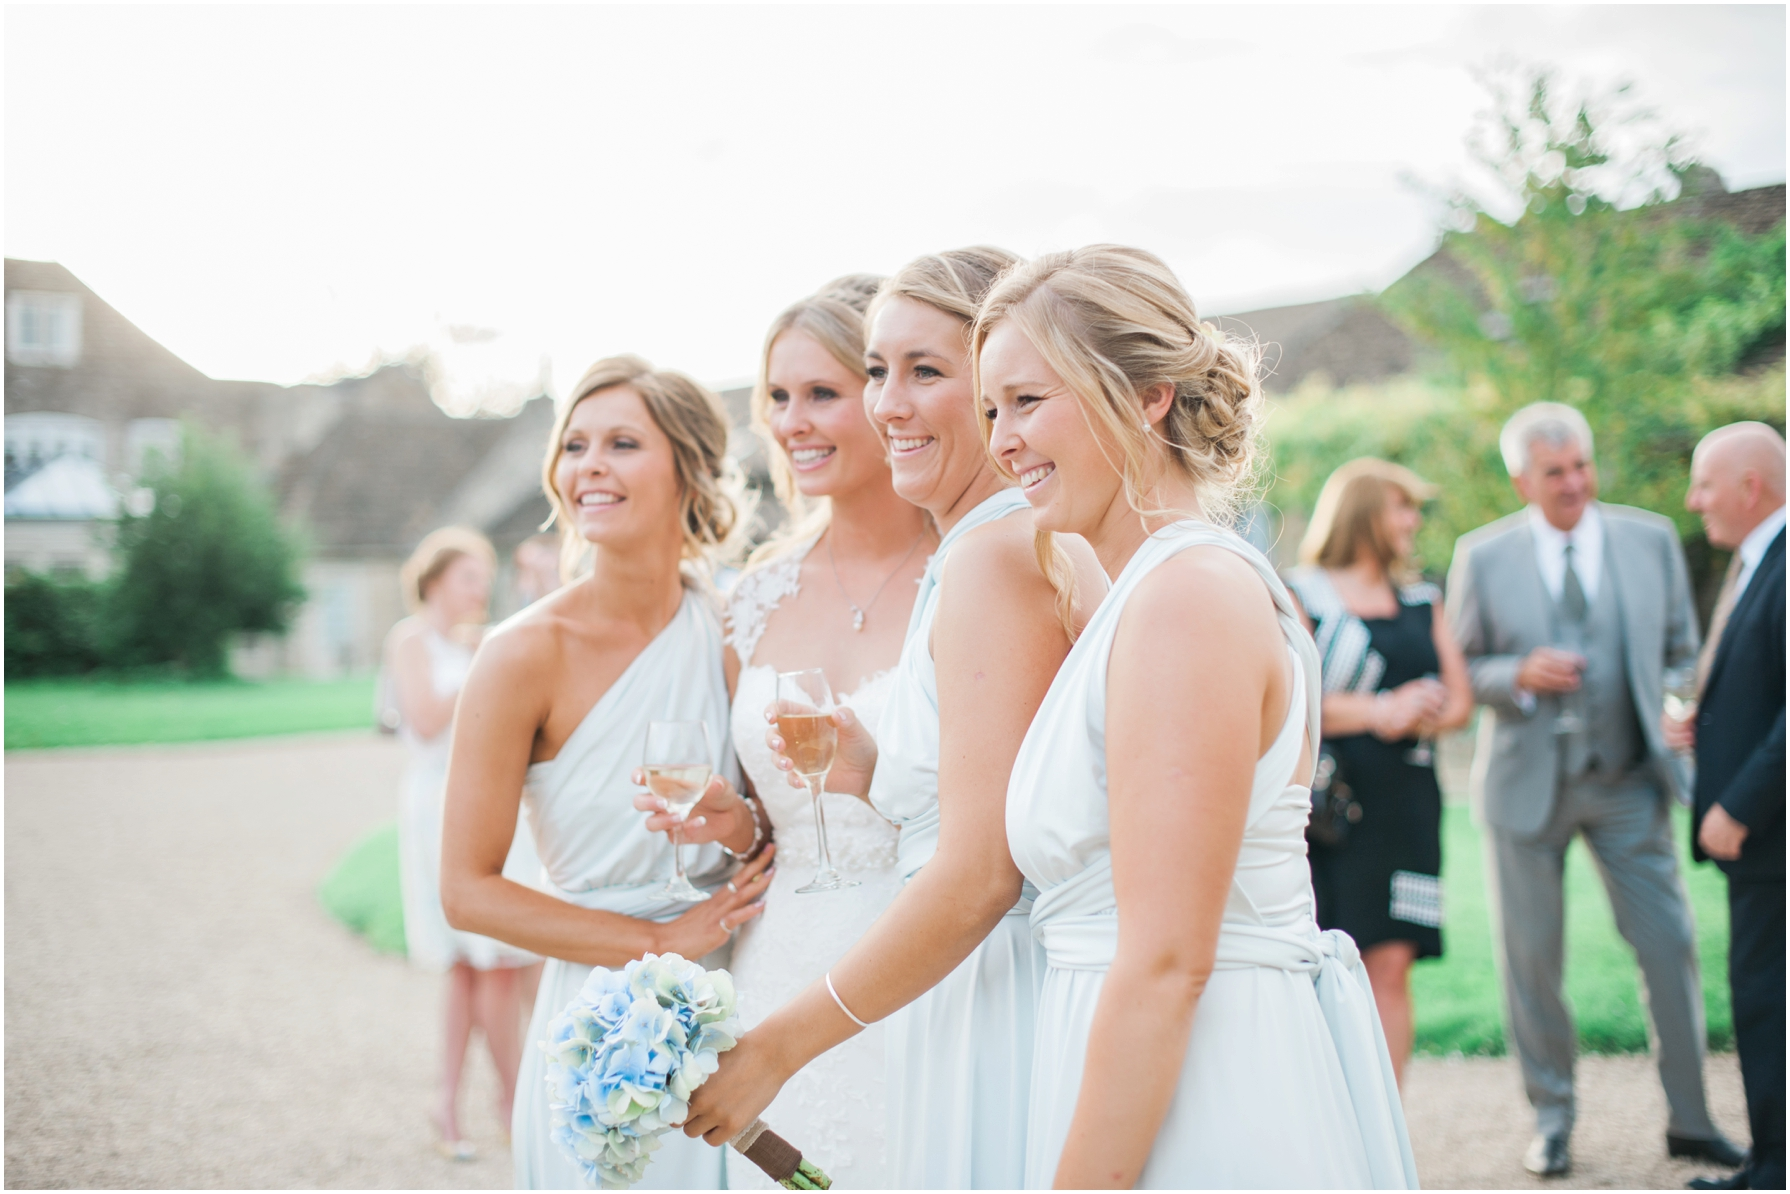 natural photography of bride and bridesmaids